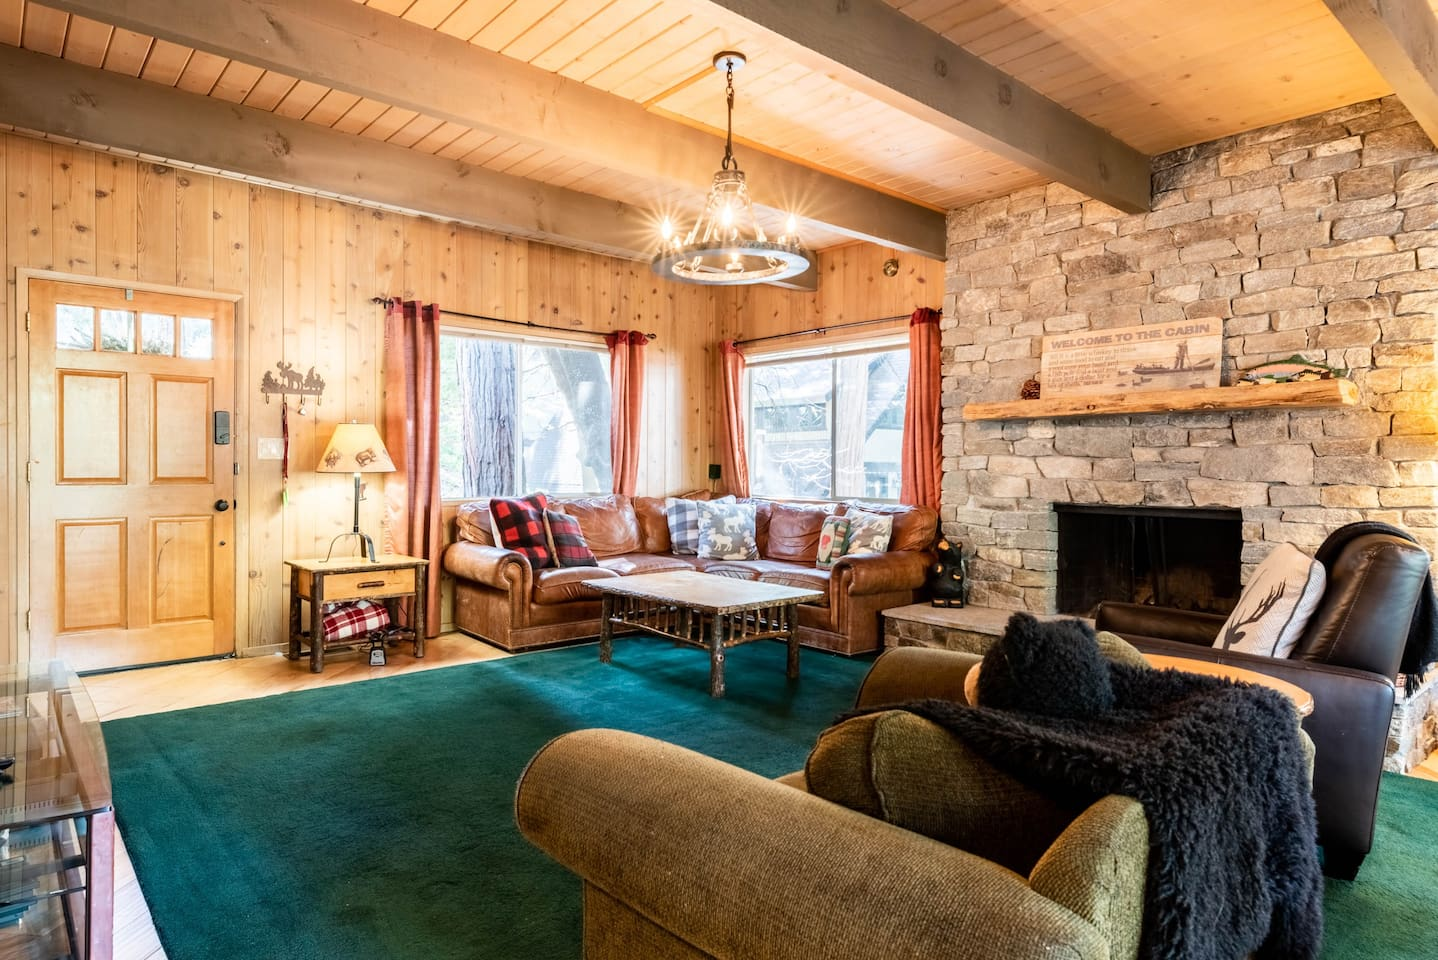 Our comfortable living room features an oversized couch, wood beams, and stone fireplace.